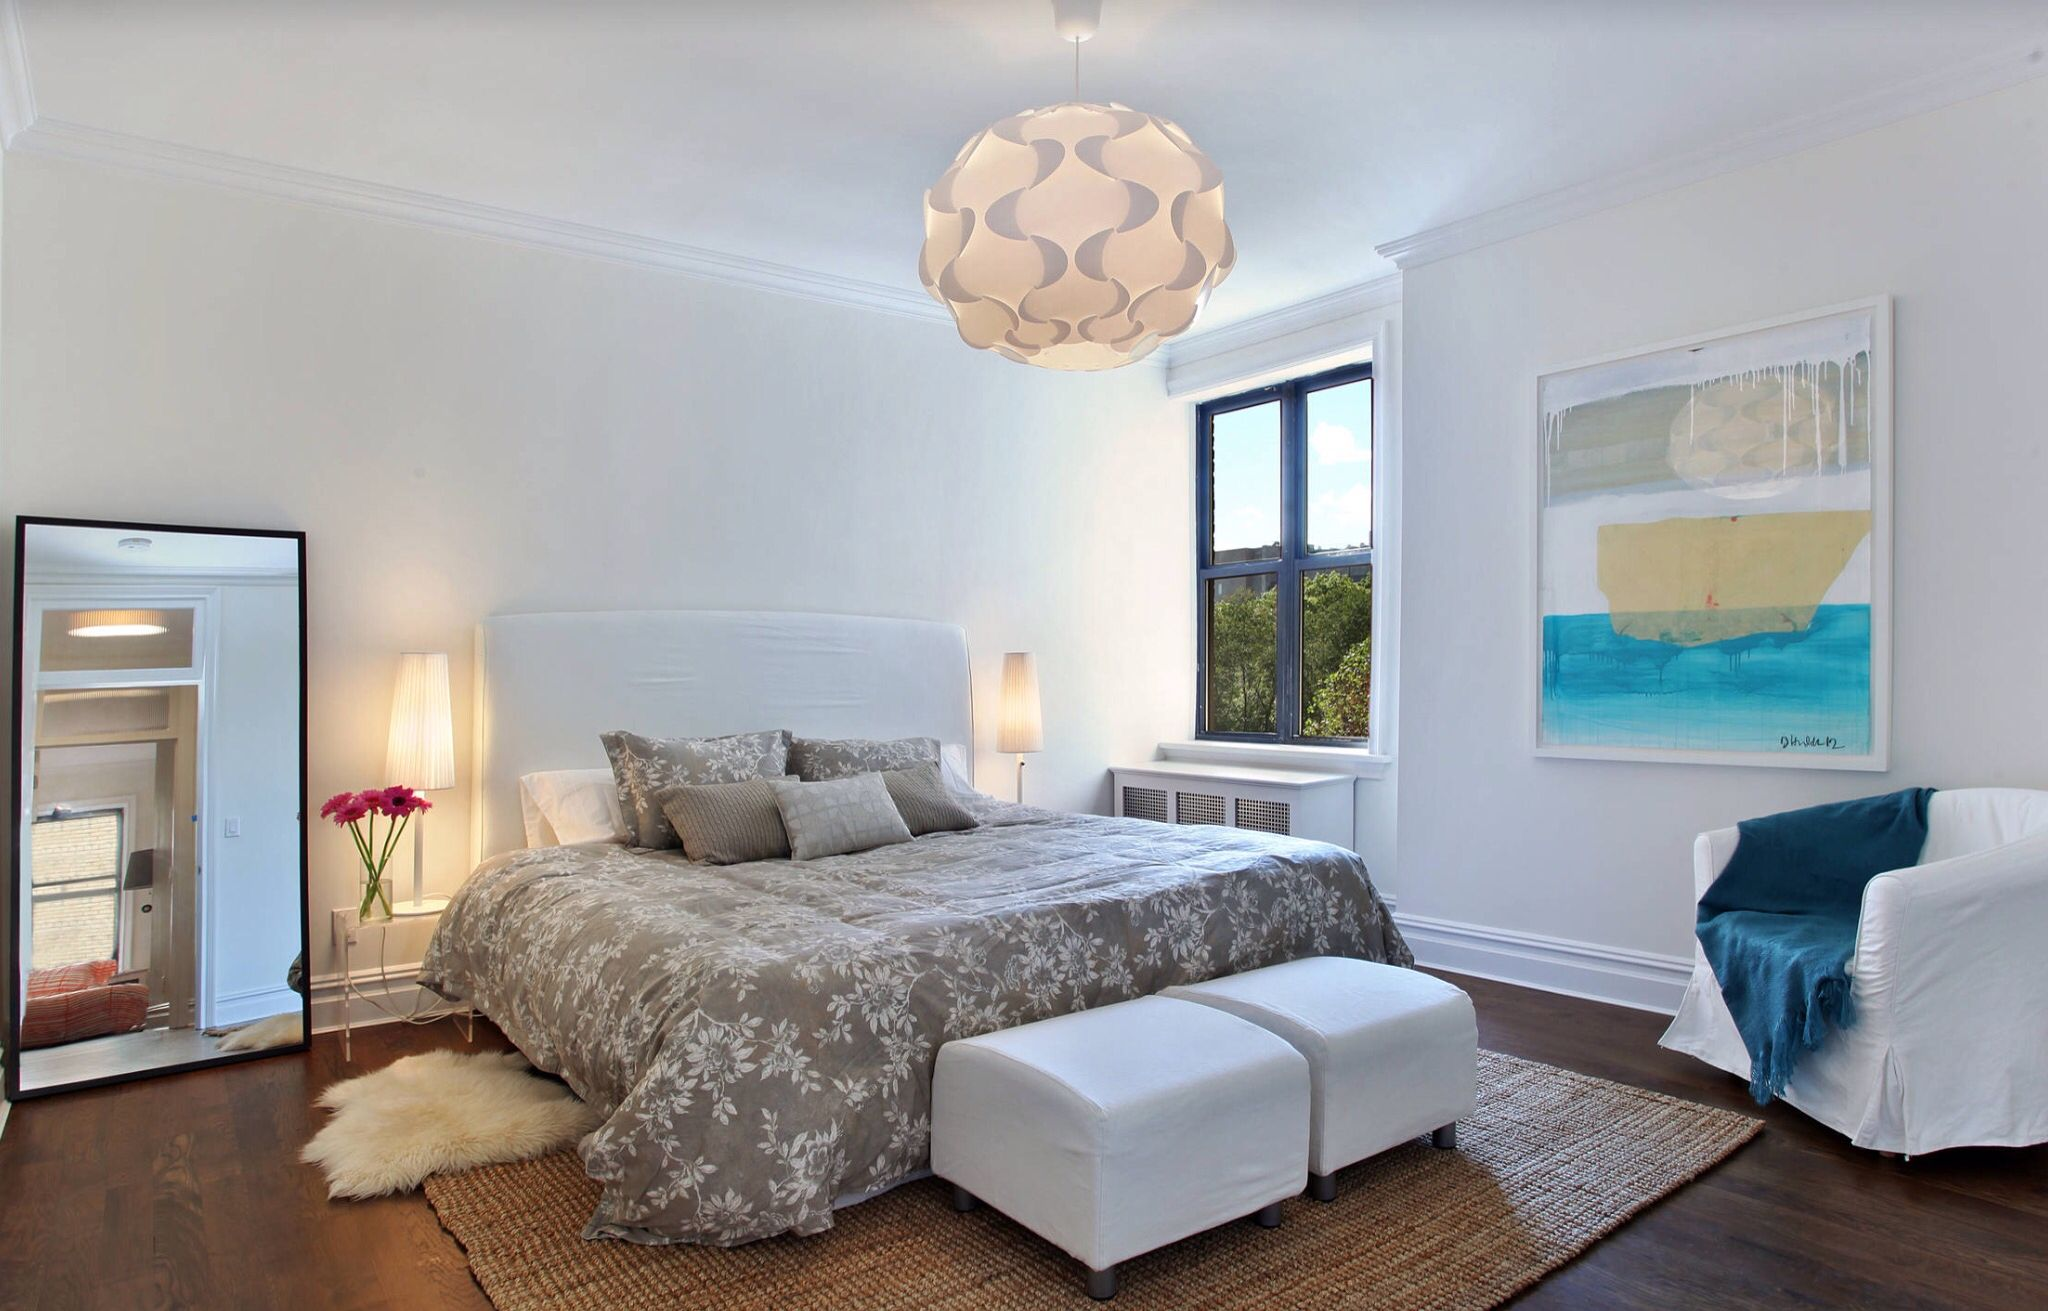 modern bedroom ideas with floating bed and underbed LED lighting